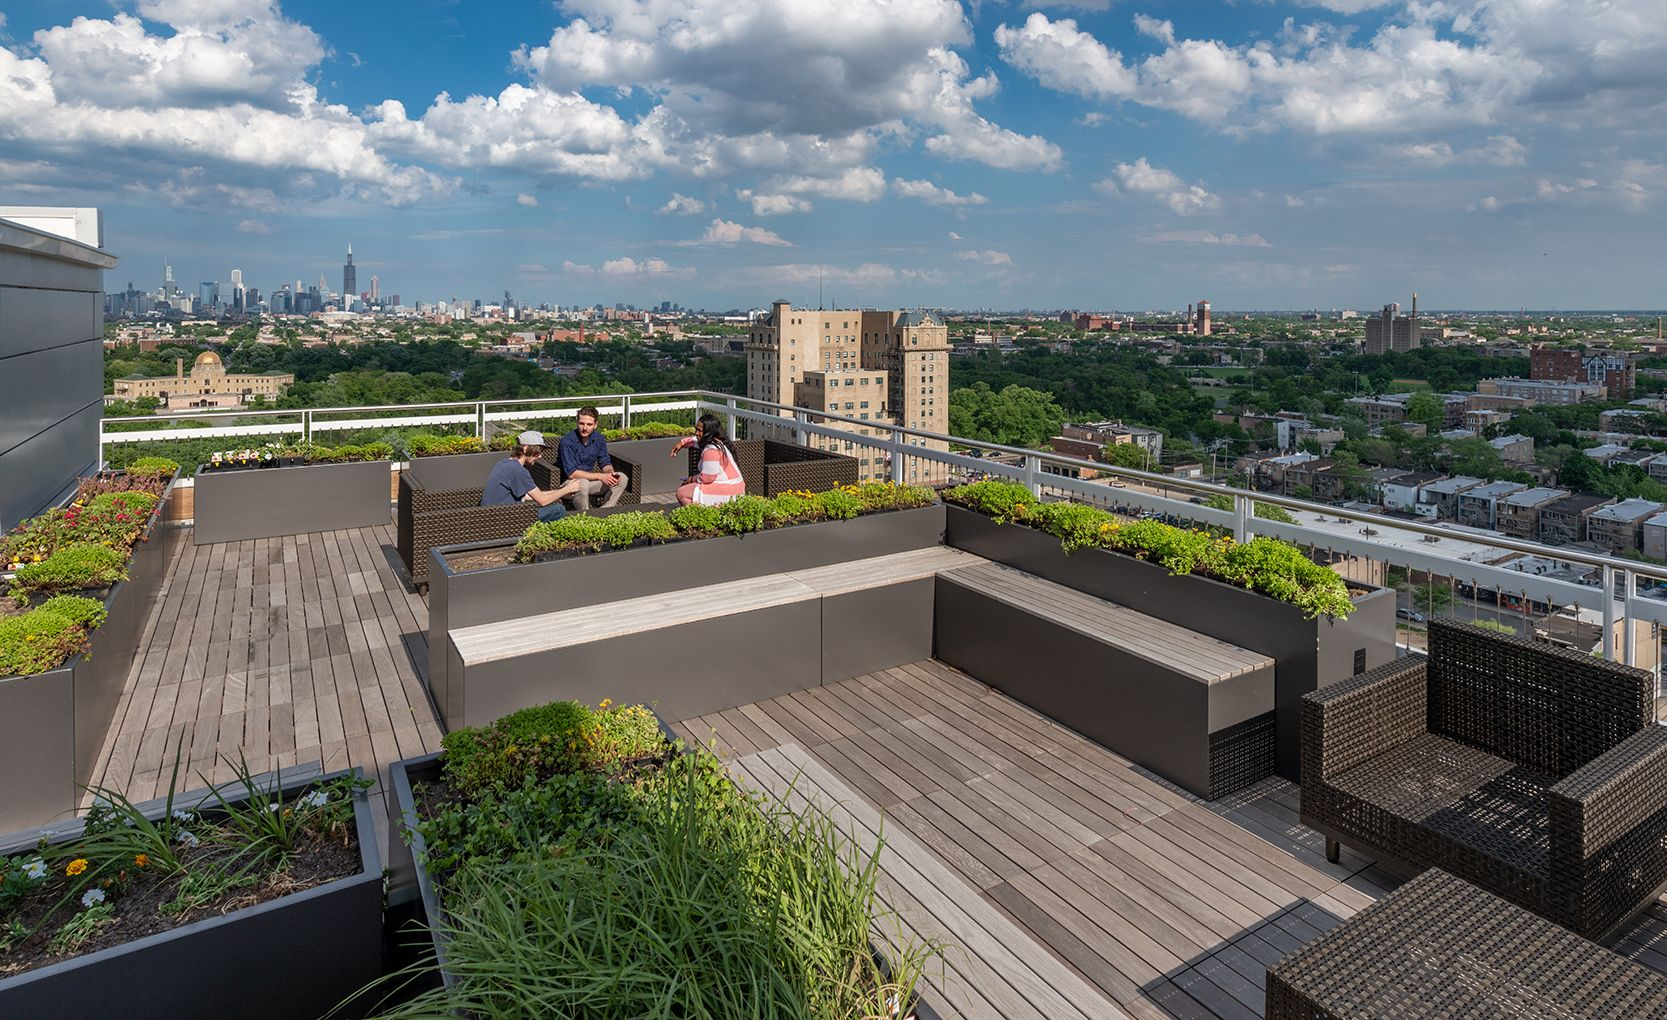 Several Key Building Amenities Are Sited On The Top Floor Encouraging Residents To Enjoy Breathtaking Views From The Roof Deck Roof Garden Roof Deck Deck